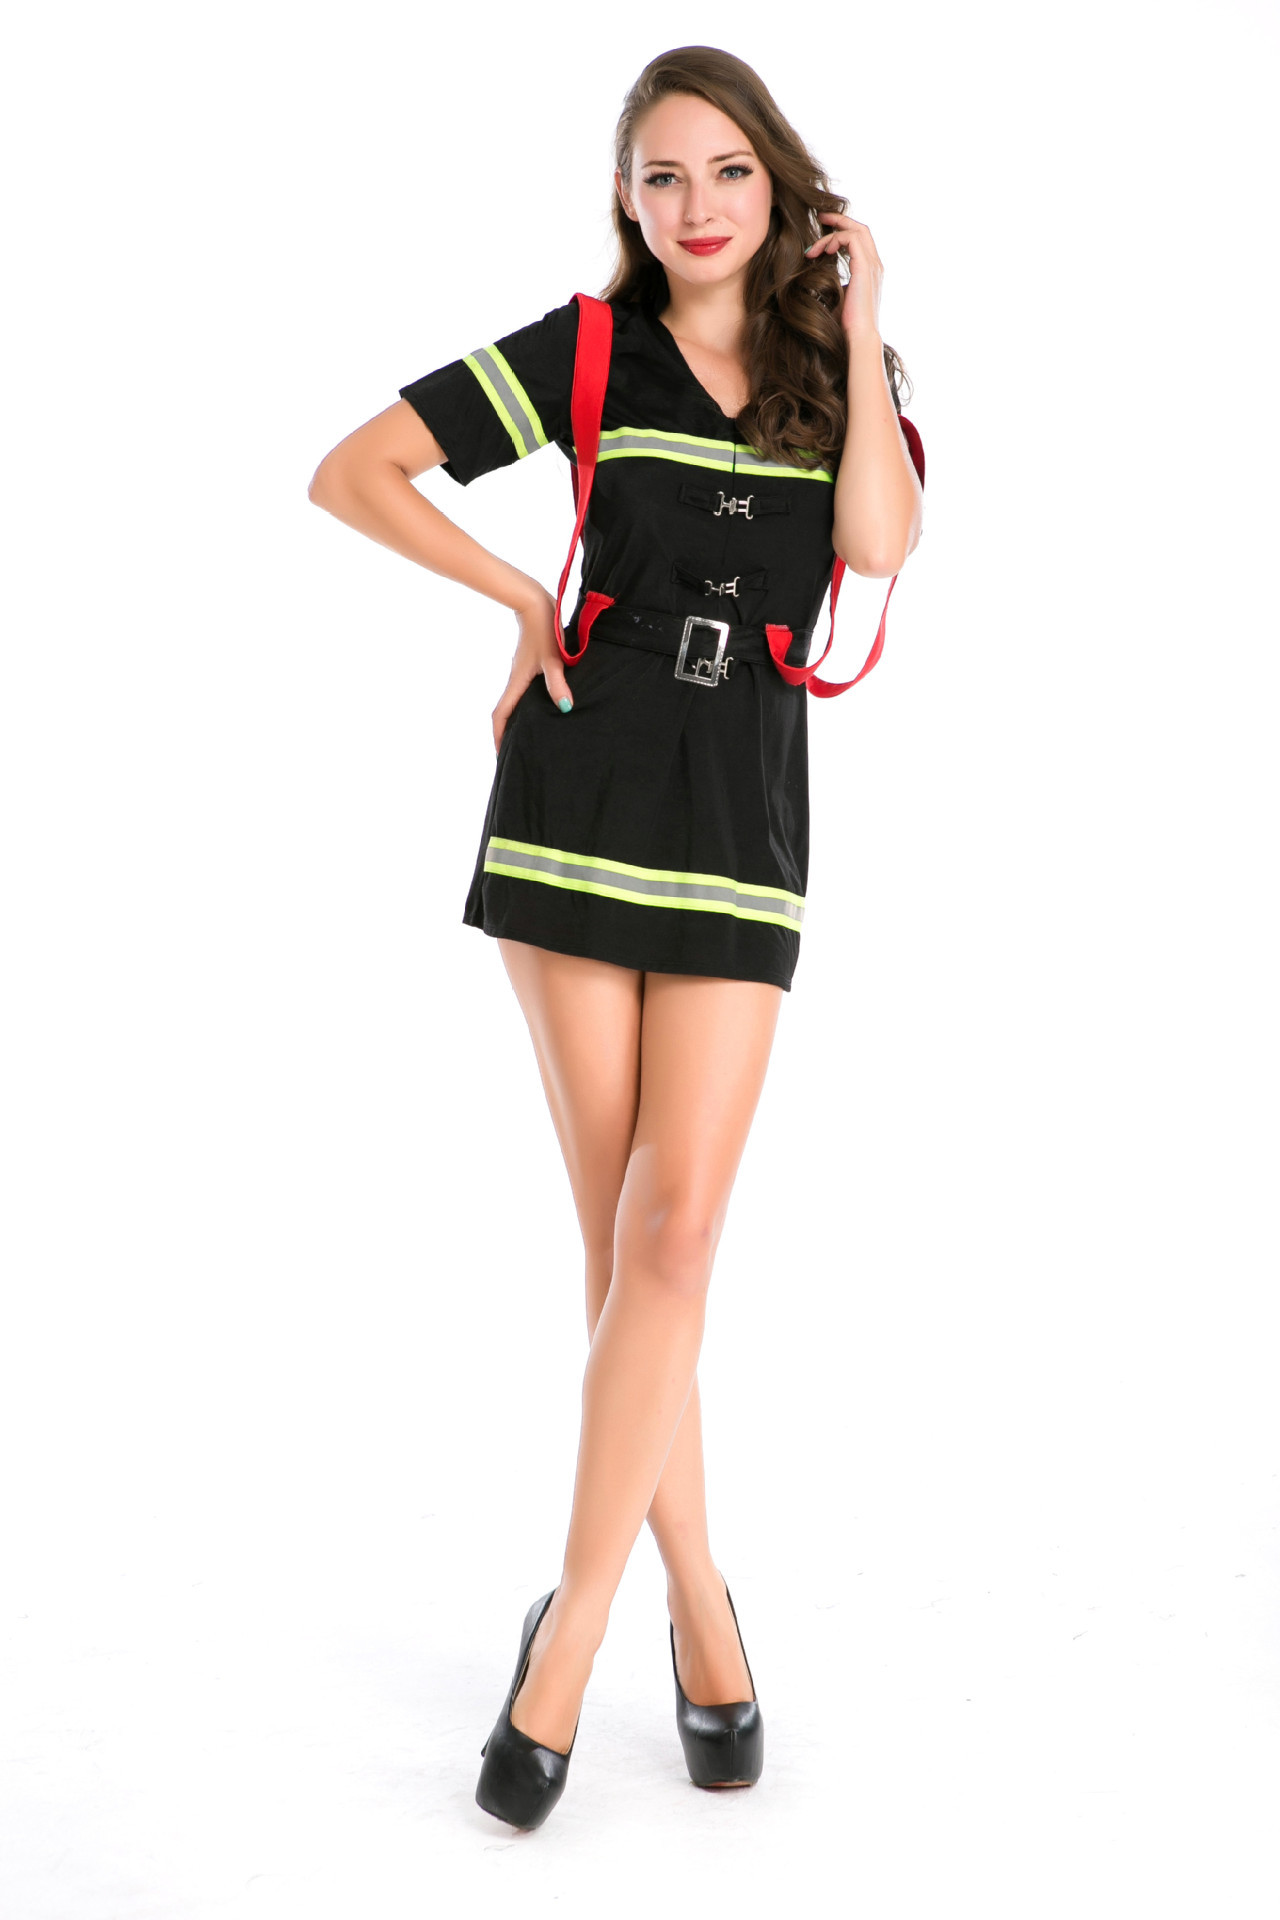 lady new sexy halloween costumes women firewoman halloween cosplay costume girls night clube make up party - Fire Girl Halloween Costume